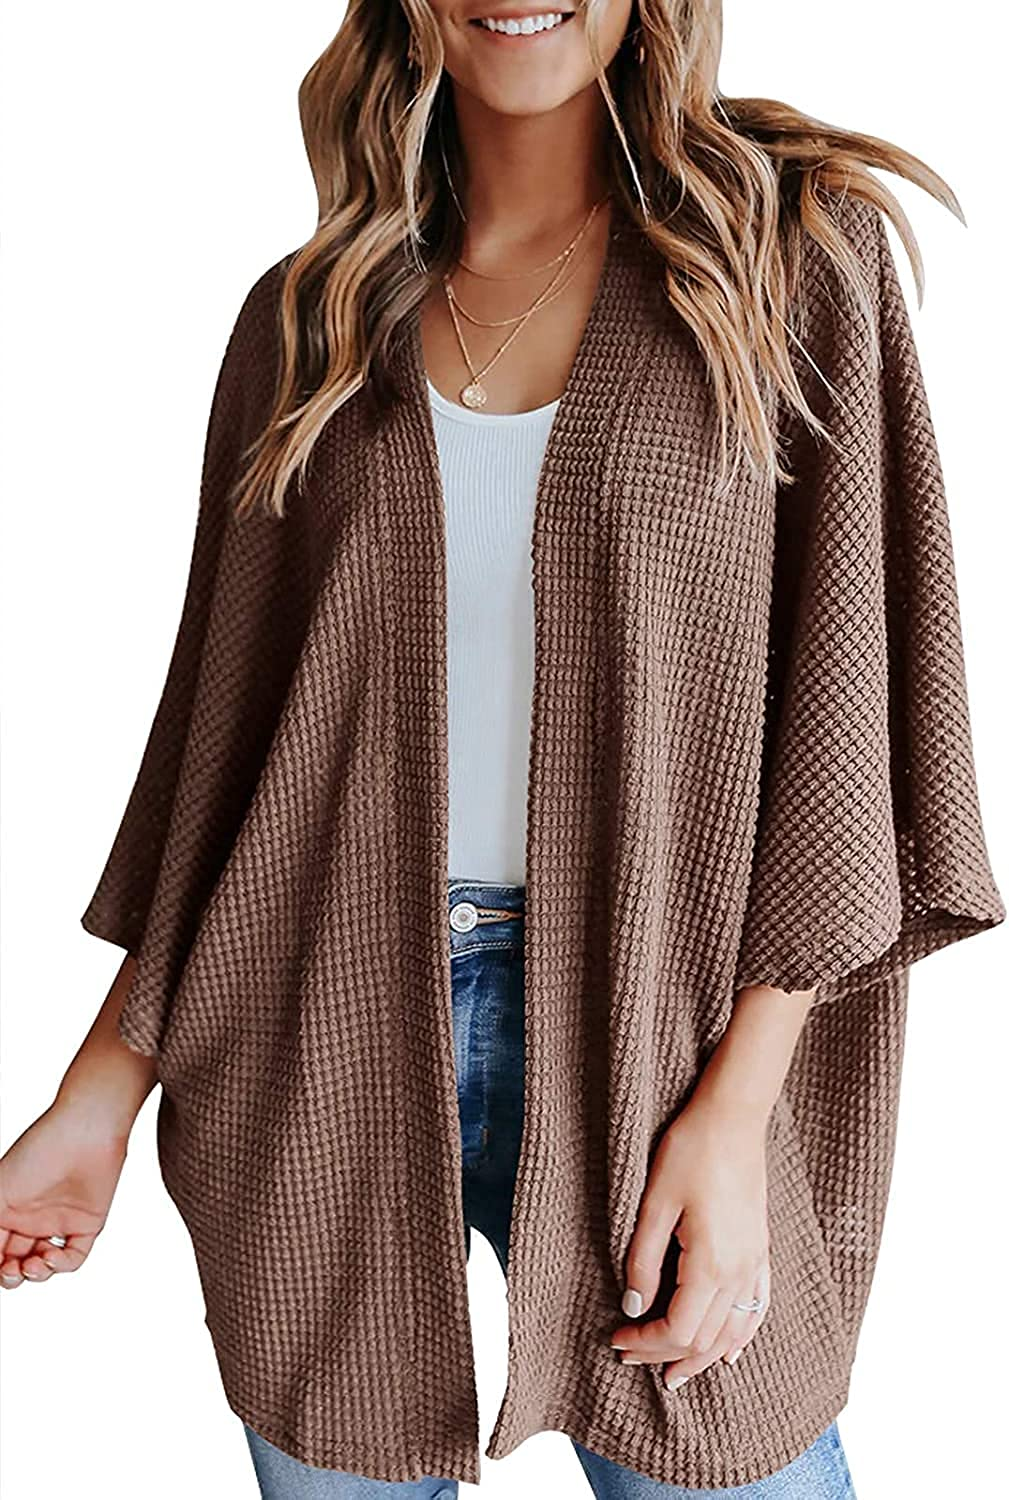 Women's Lightweight Open Front Waffle Knit Cardigan 3/4 Batwing Sleeve Sweaters Summer Kimono Beach Cover Up